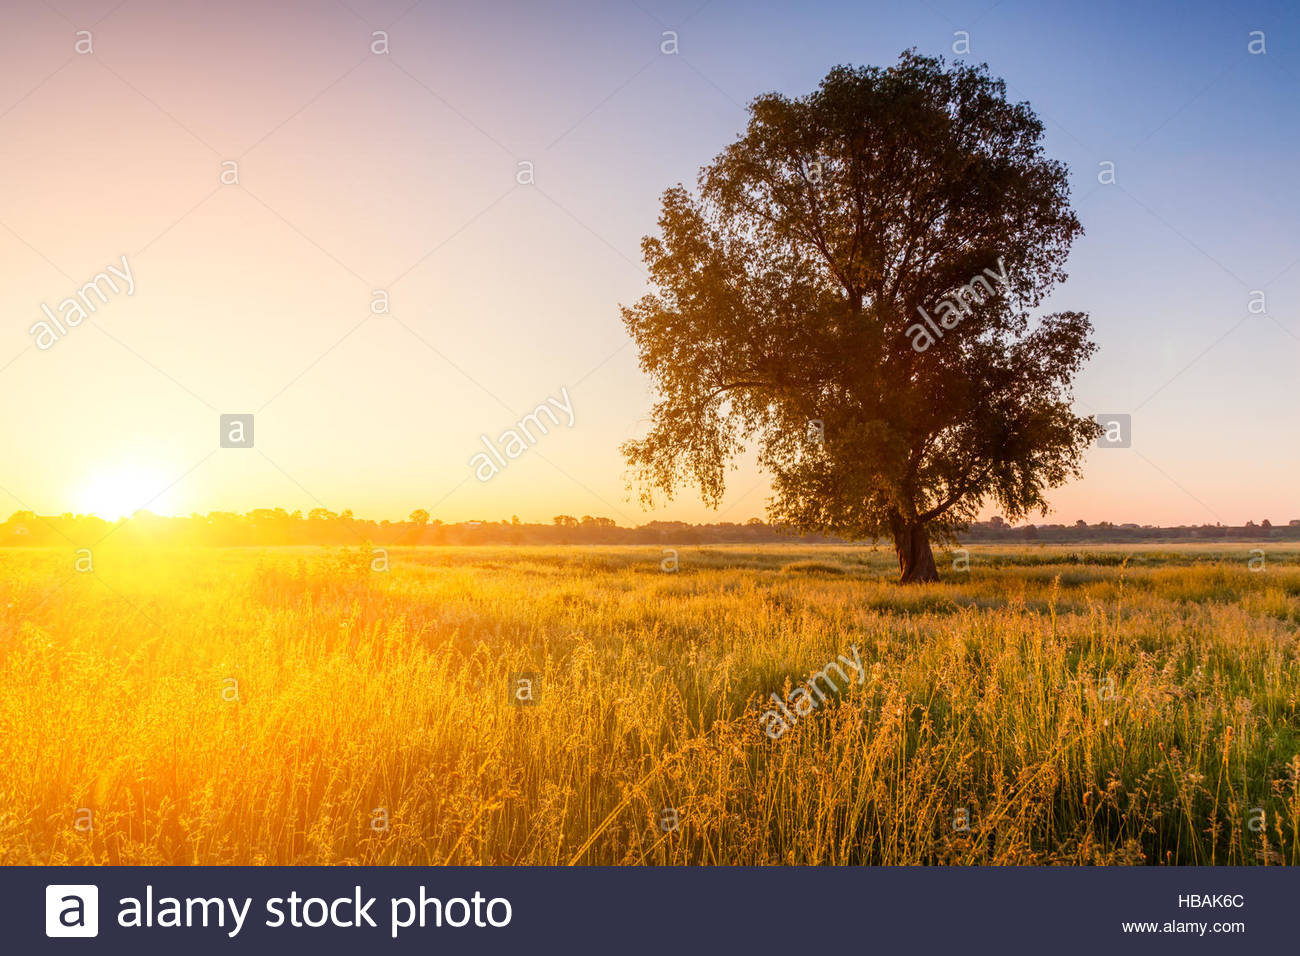 lonely tree on field at dawn - Stock Image